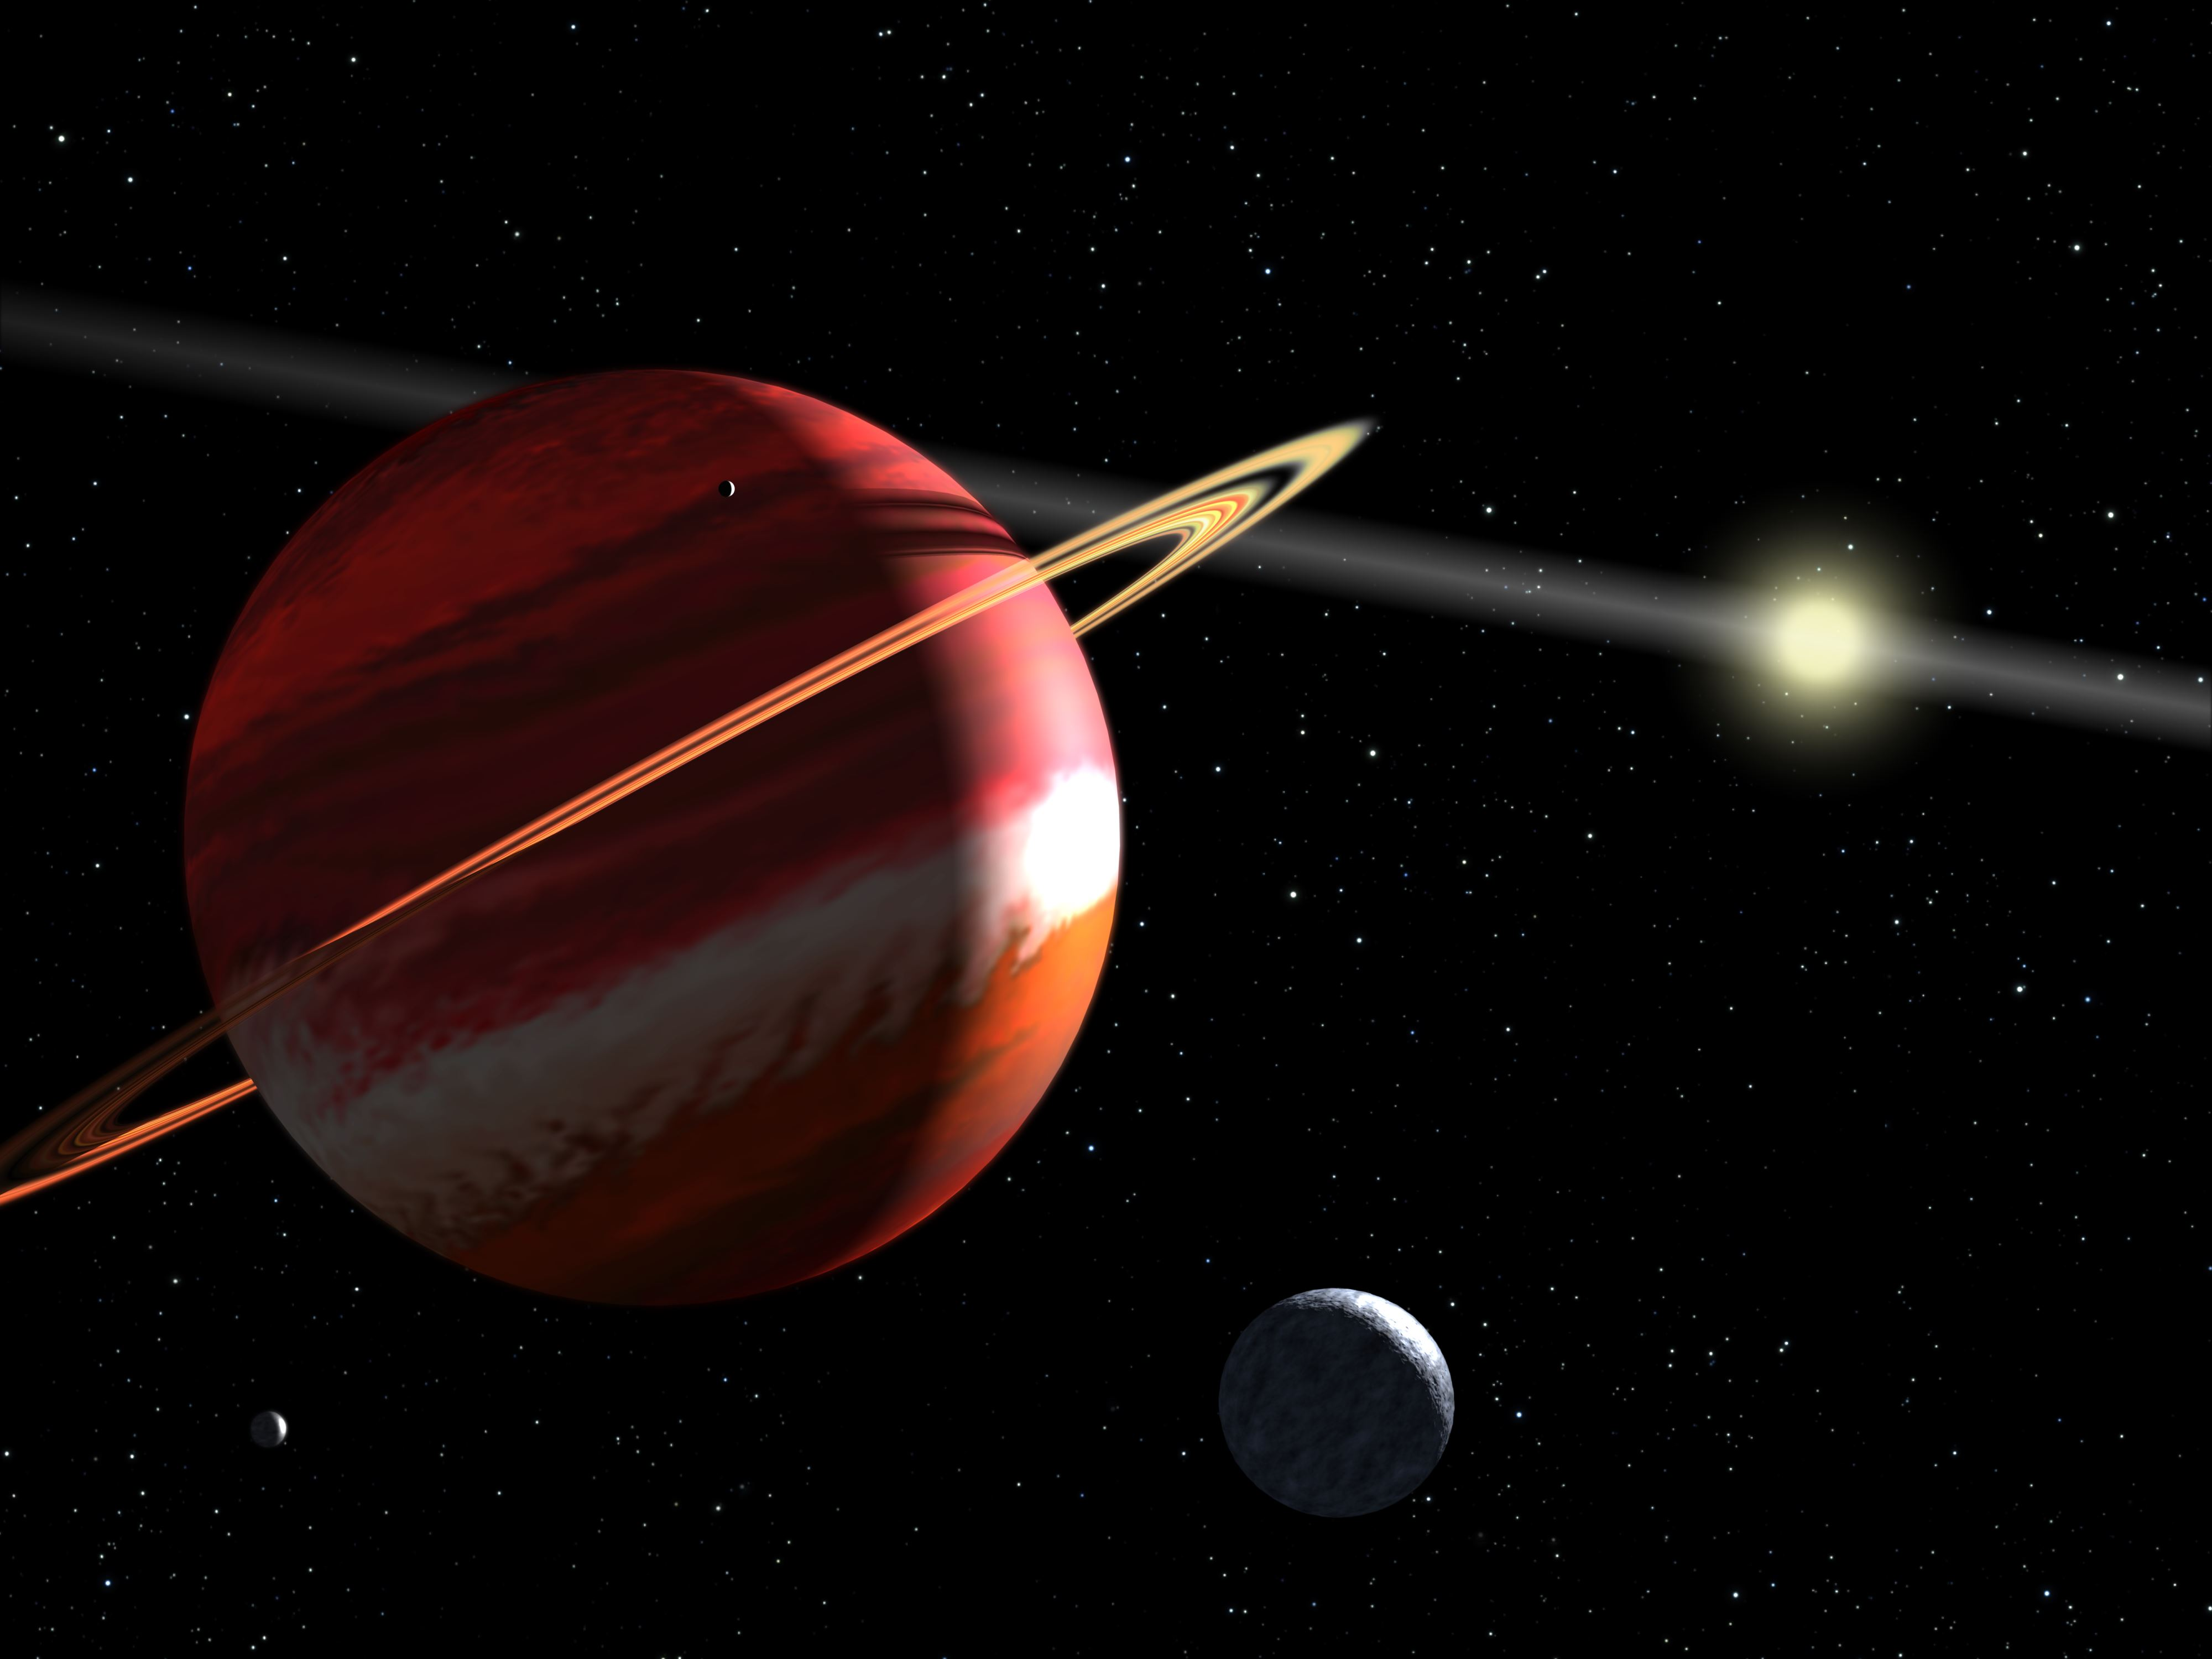 http://upload.wikimedia.org/wikipedia/commons/9/96/Epsilon_Eridani_b.jpg